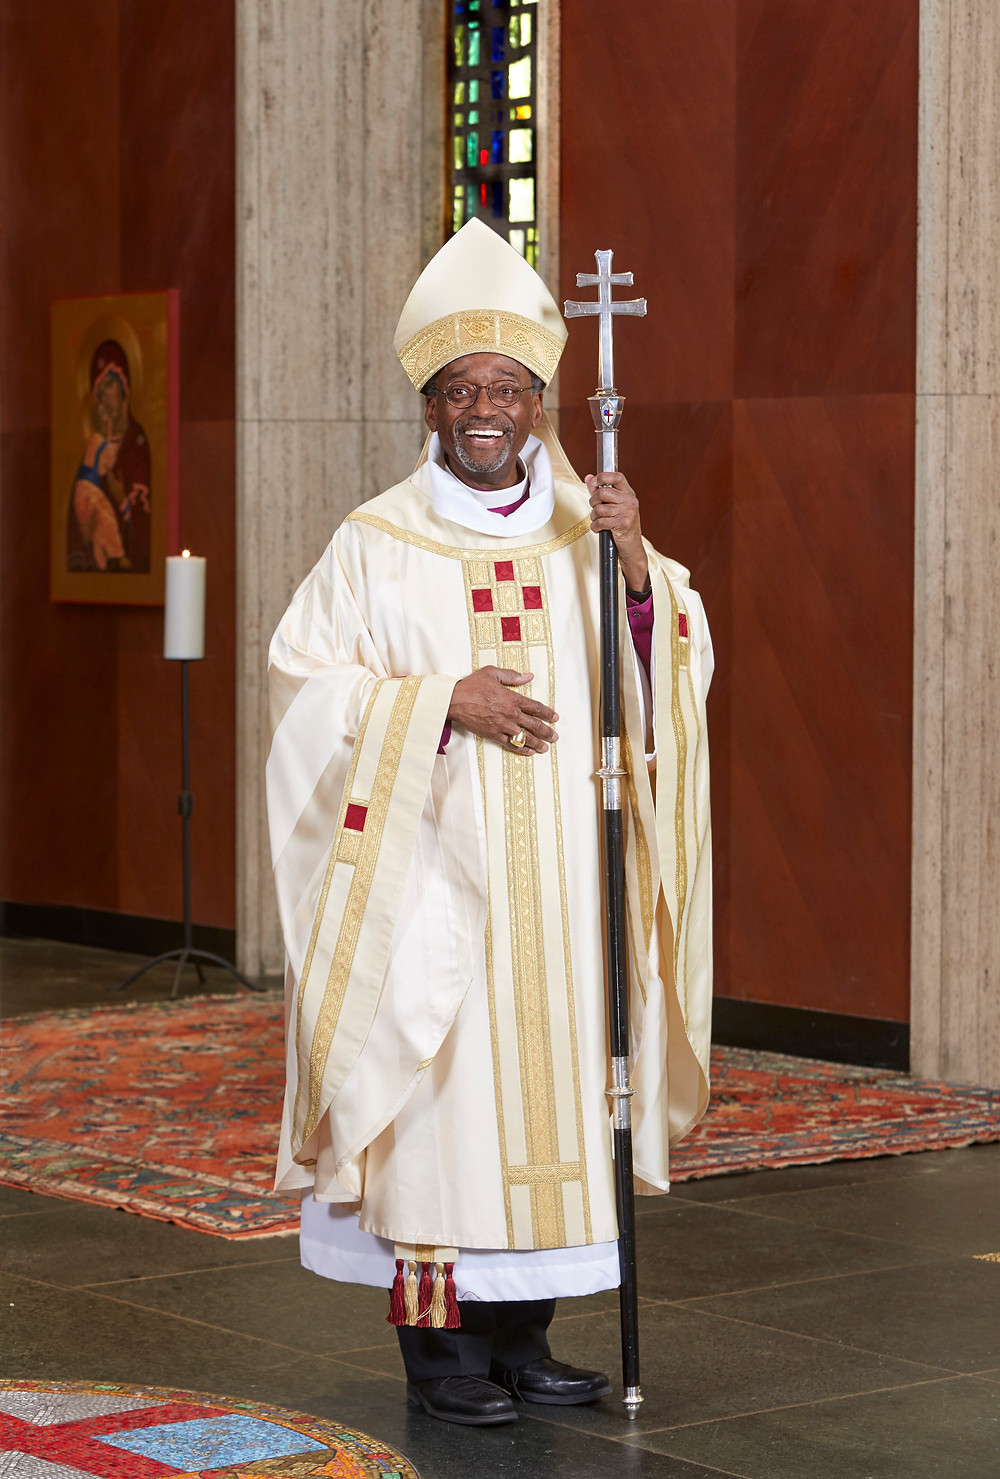 https://www.episcopalchurch.org/biography-most-rev-michael-curry